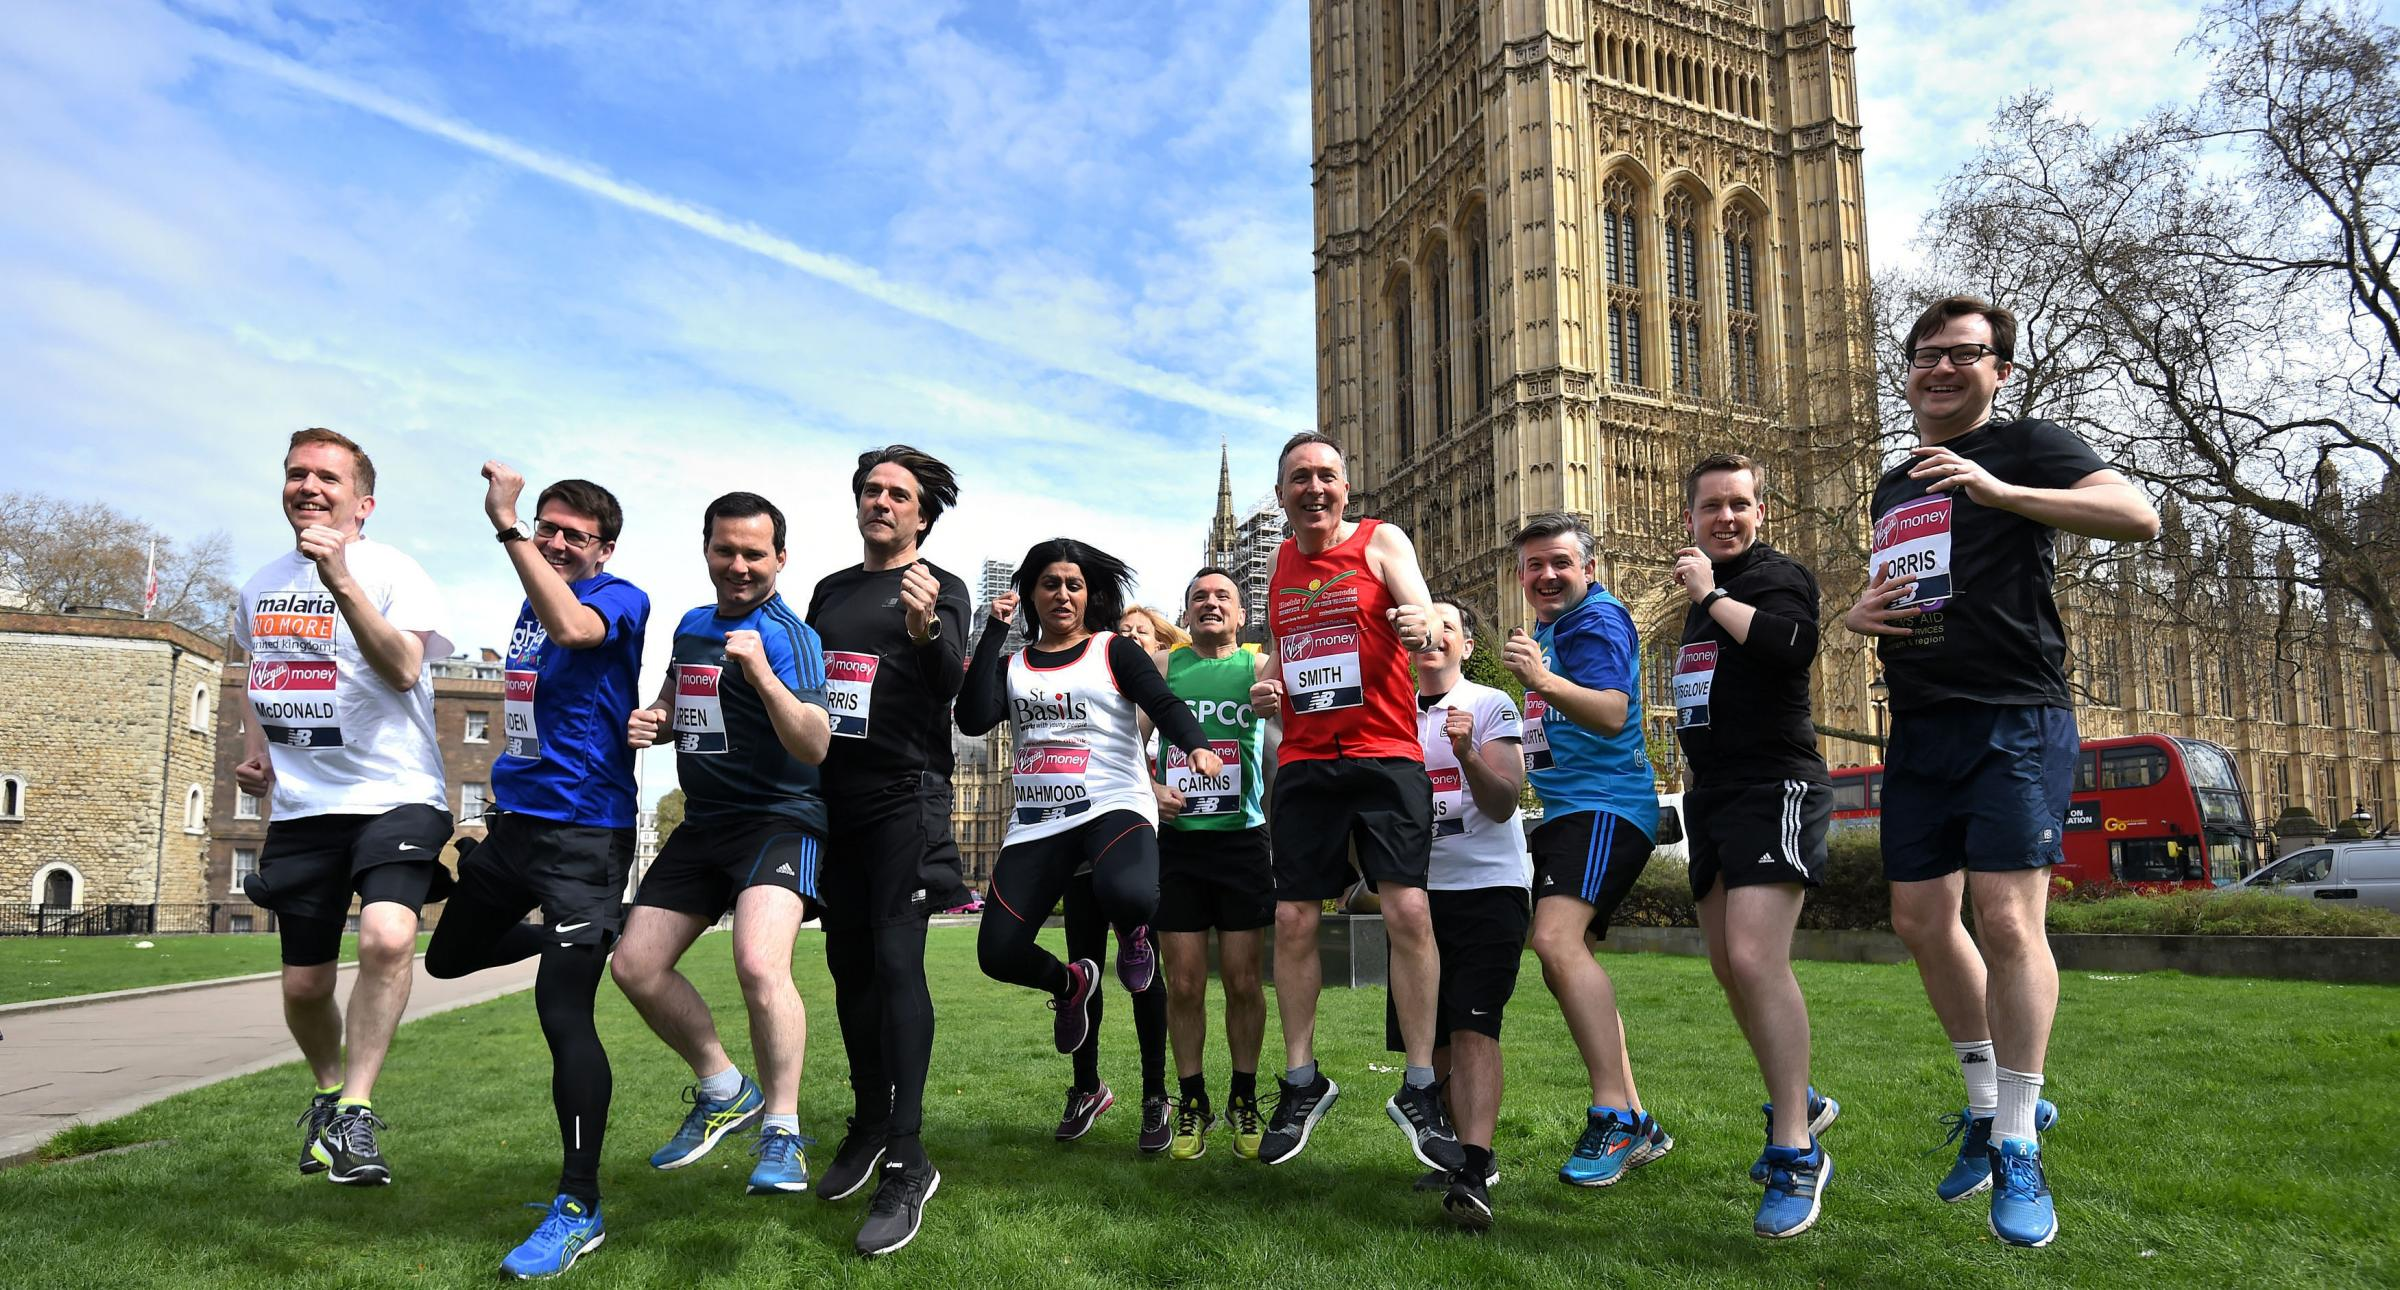 RUNNERS: Chris Green, third from left, with other MPS who are running in the Virgin Money London Marathon on Sunday: Kirsty O'Connor/PA Wire